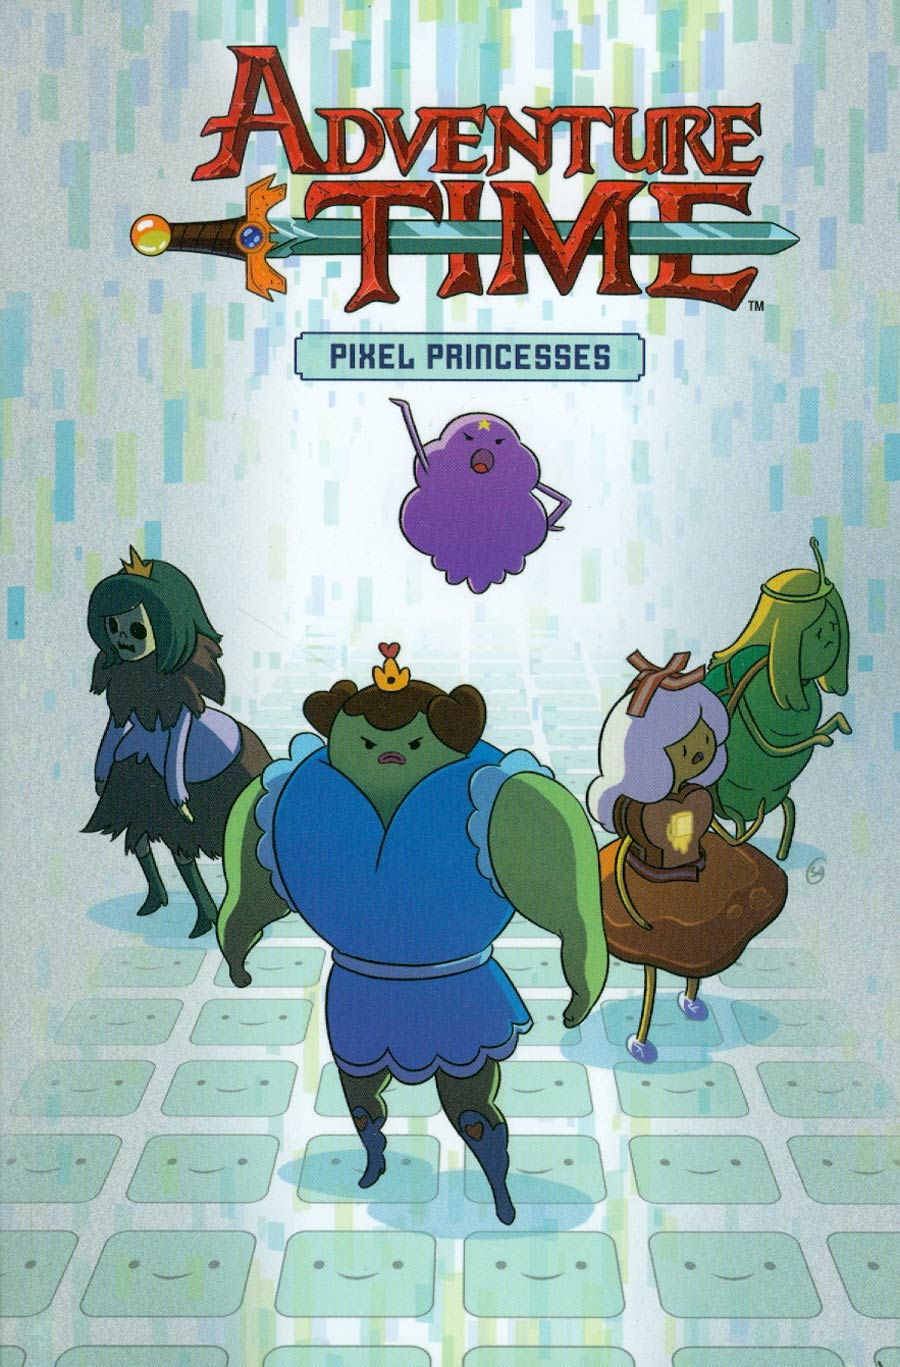 Adventure Time Original Graphic Novel Vol 2 Pixel Princesses GN